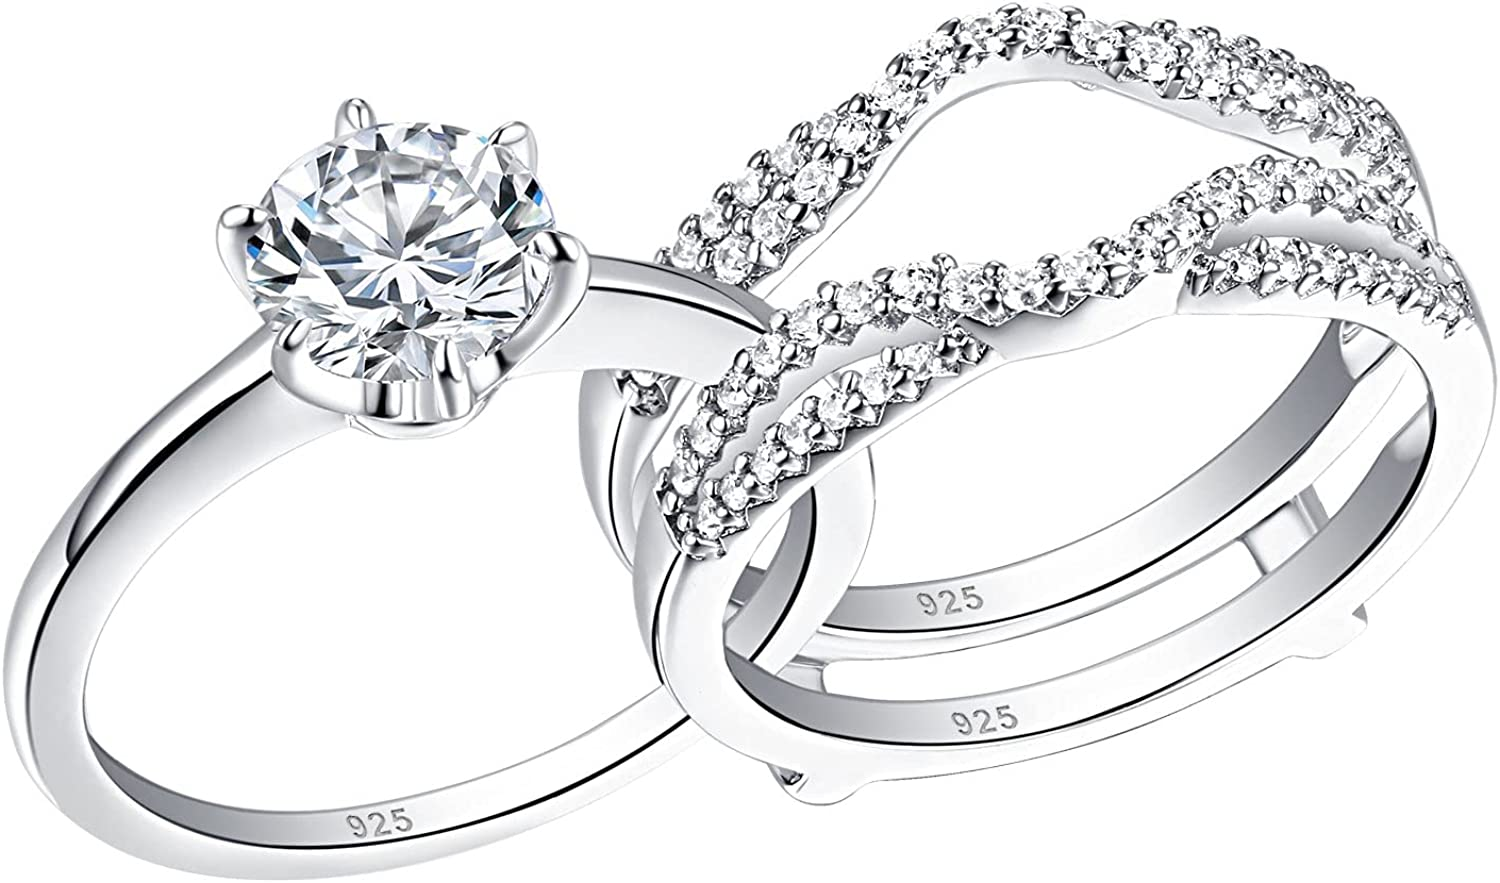 Wuziwen Wedding Rings for Women Round Solitaire Ri Max 66% OFF Cz Engagement Max 58% OFF